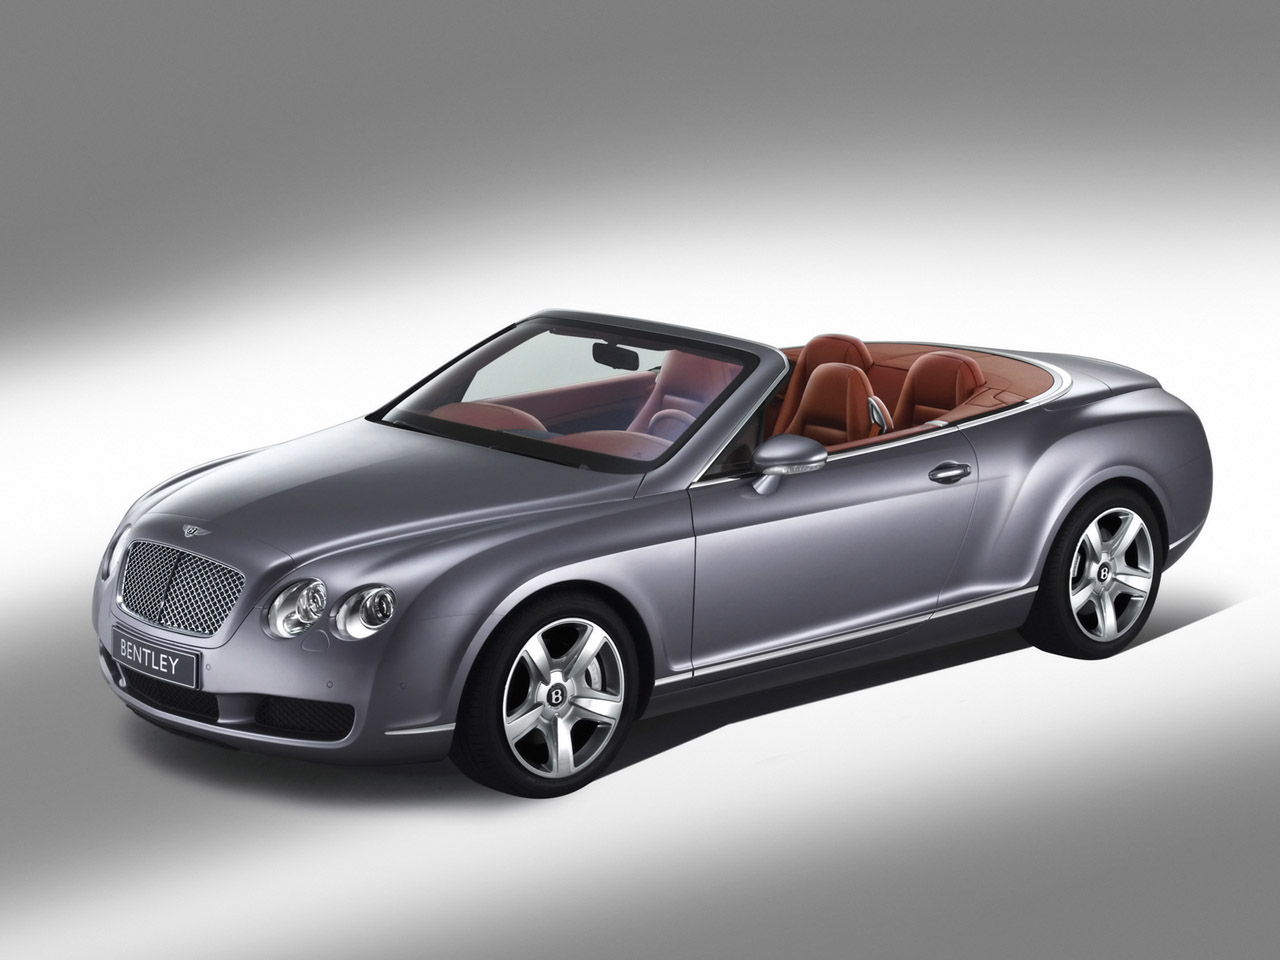 Bentley Continental GTC: 10 фото